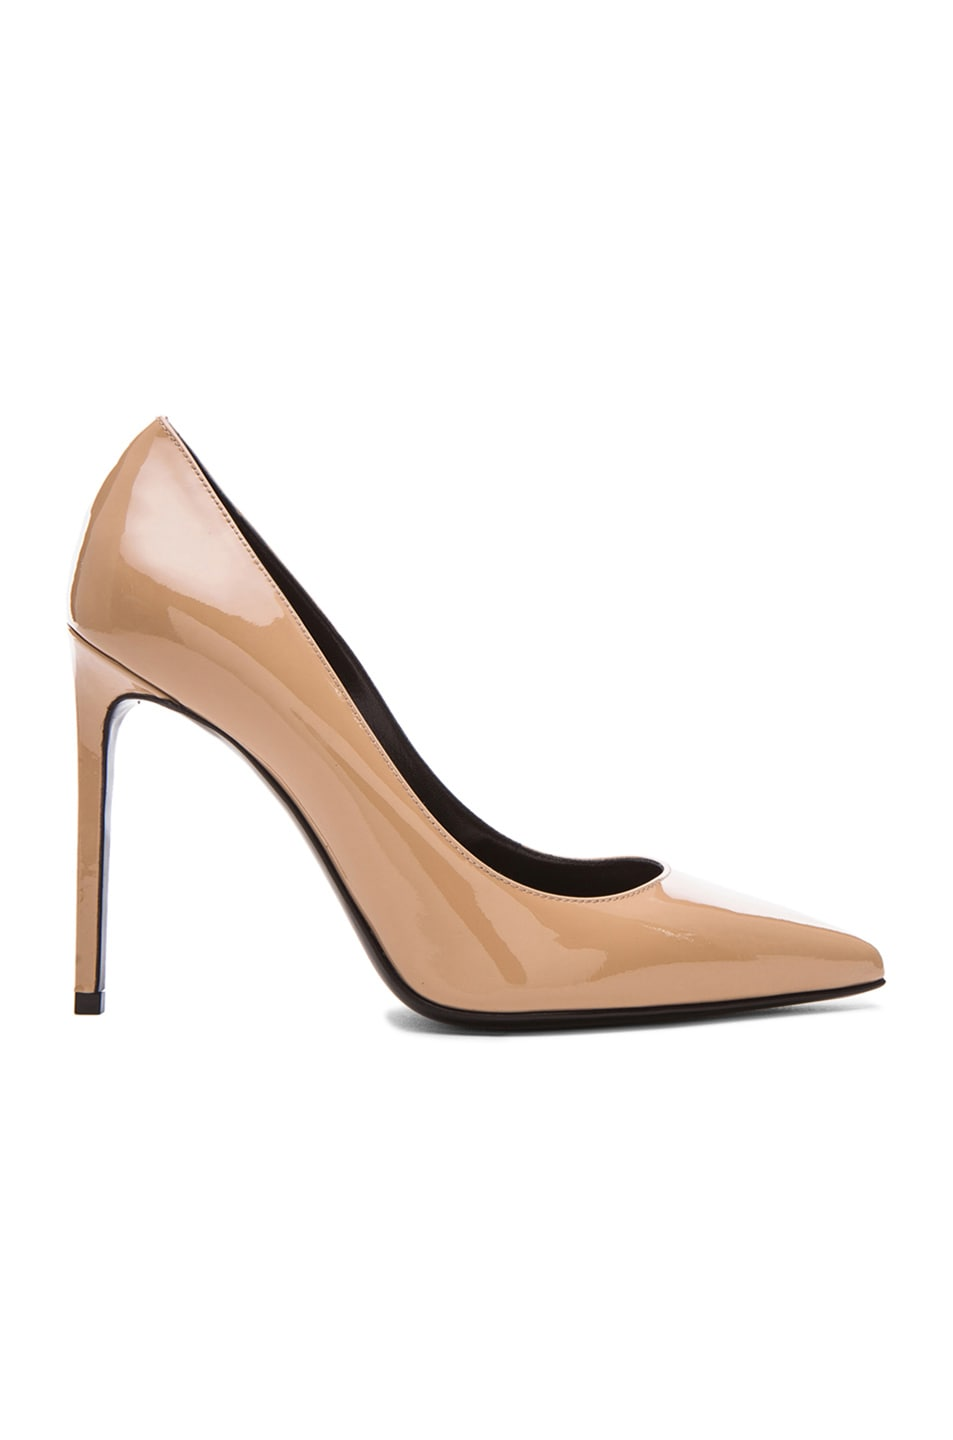 Image 1 of Saint Laurent Patent Leather Paris Skinny Pumps in Darker Nude